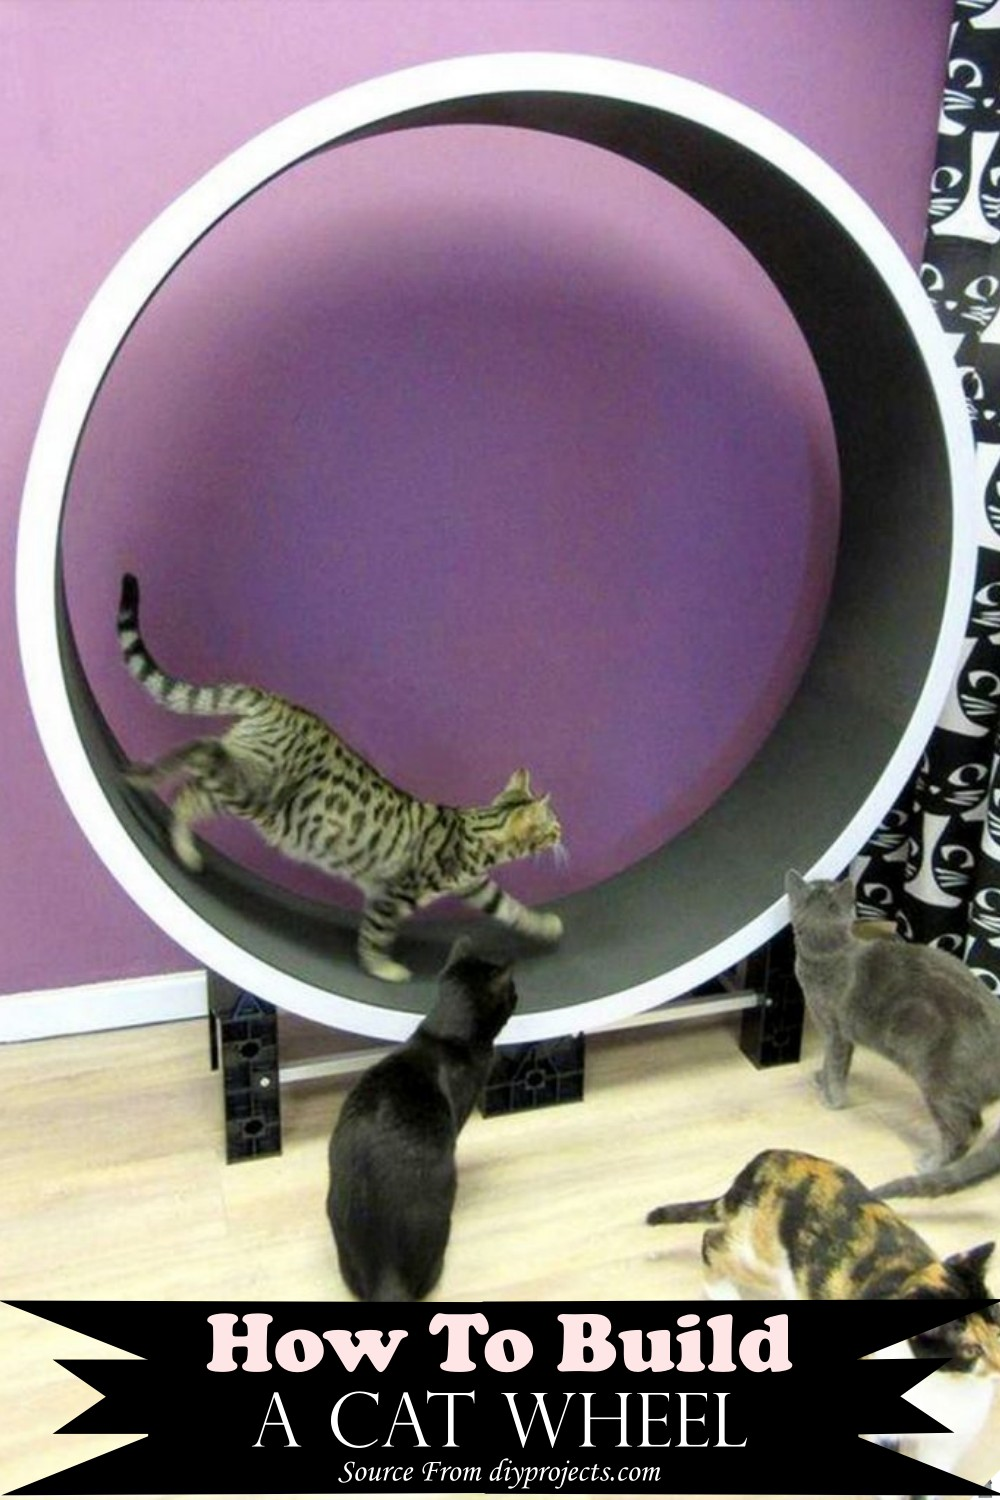 How To Build A exercise opt ion for your kittie indoor